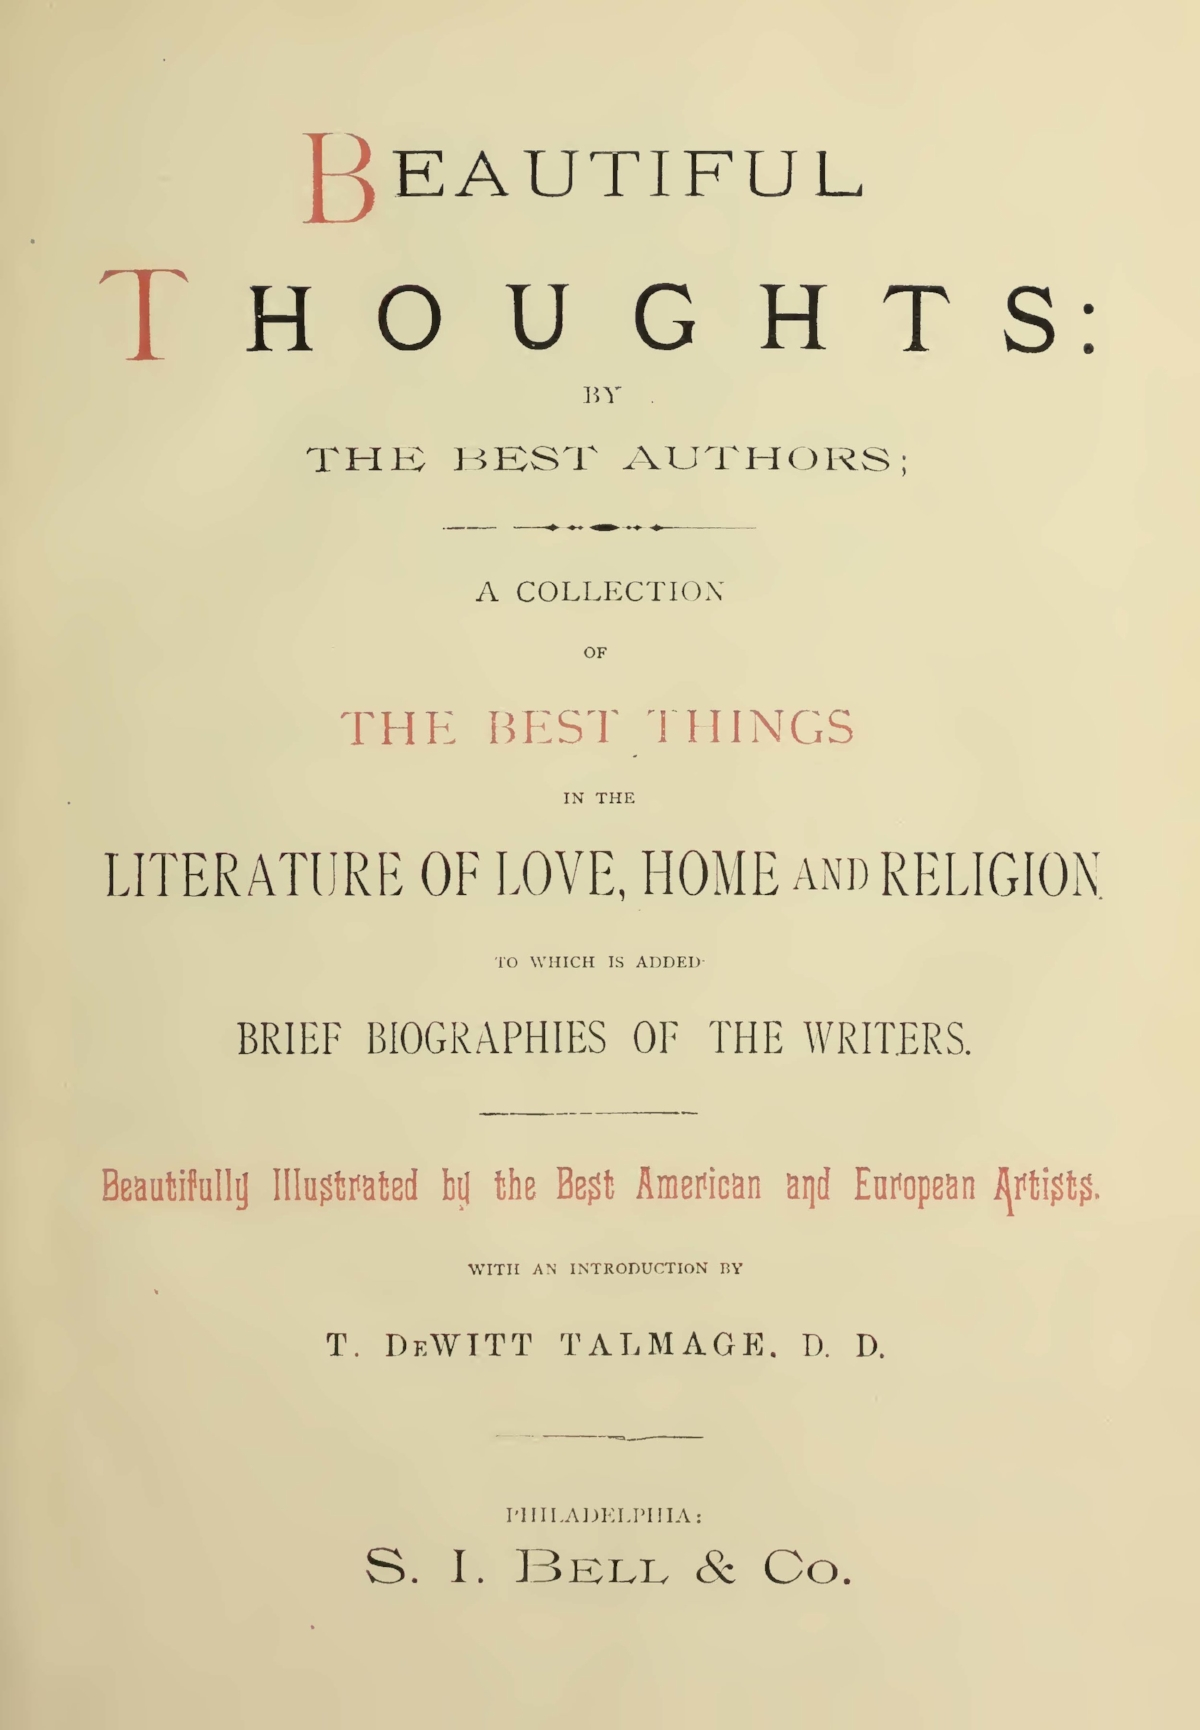 Talmage, Thomas De Witt, Beautiful Thoughts Title Page.jpg